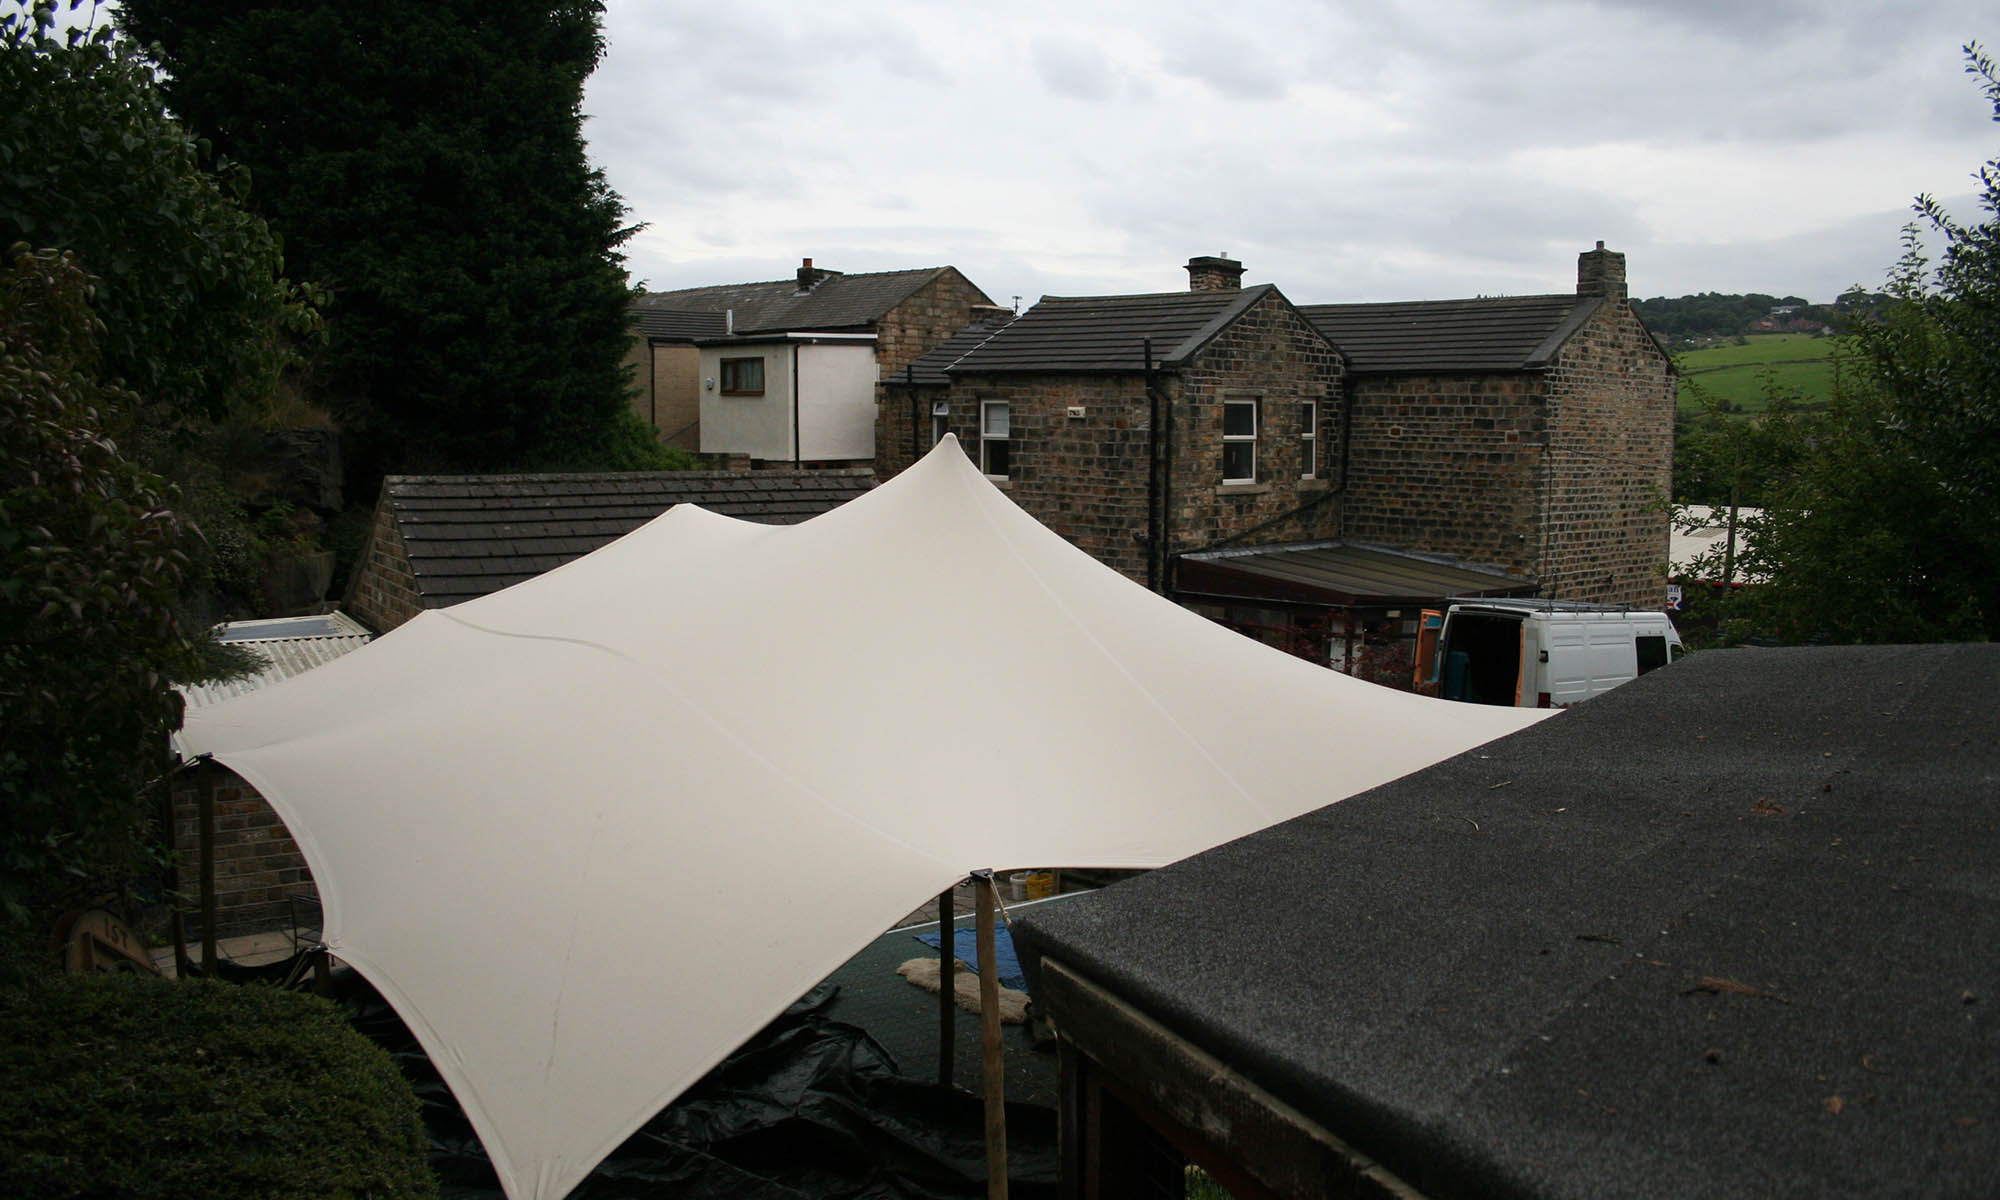 stretch tent hire mirfield west yorkshire united kingdom stretch tent hire awkward stretch tent hire multi level garden cover stretch tent attached to garage over multi level garden stretch tent in awquard garden space attached to walls